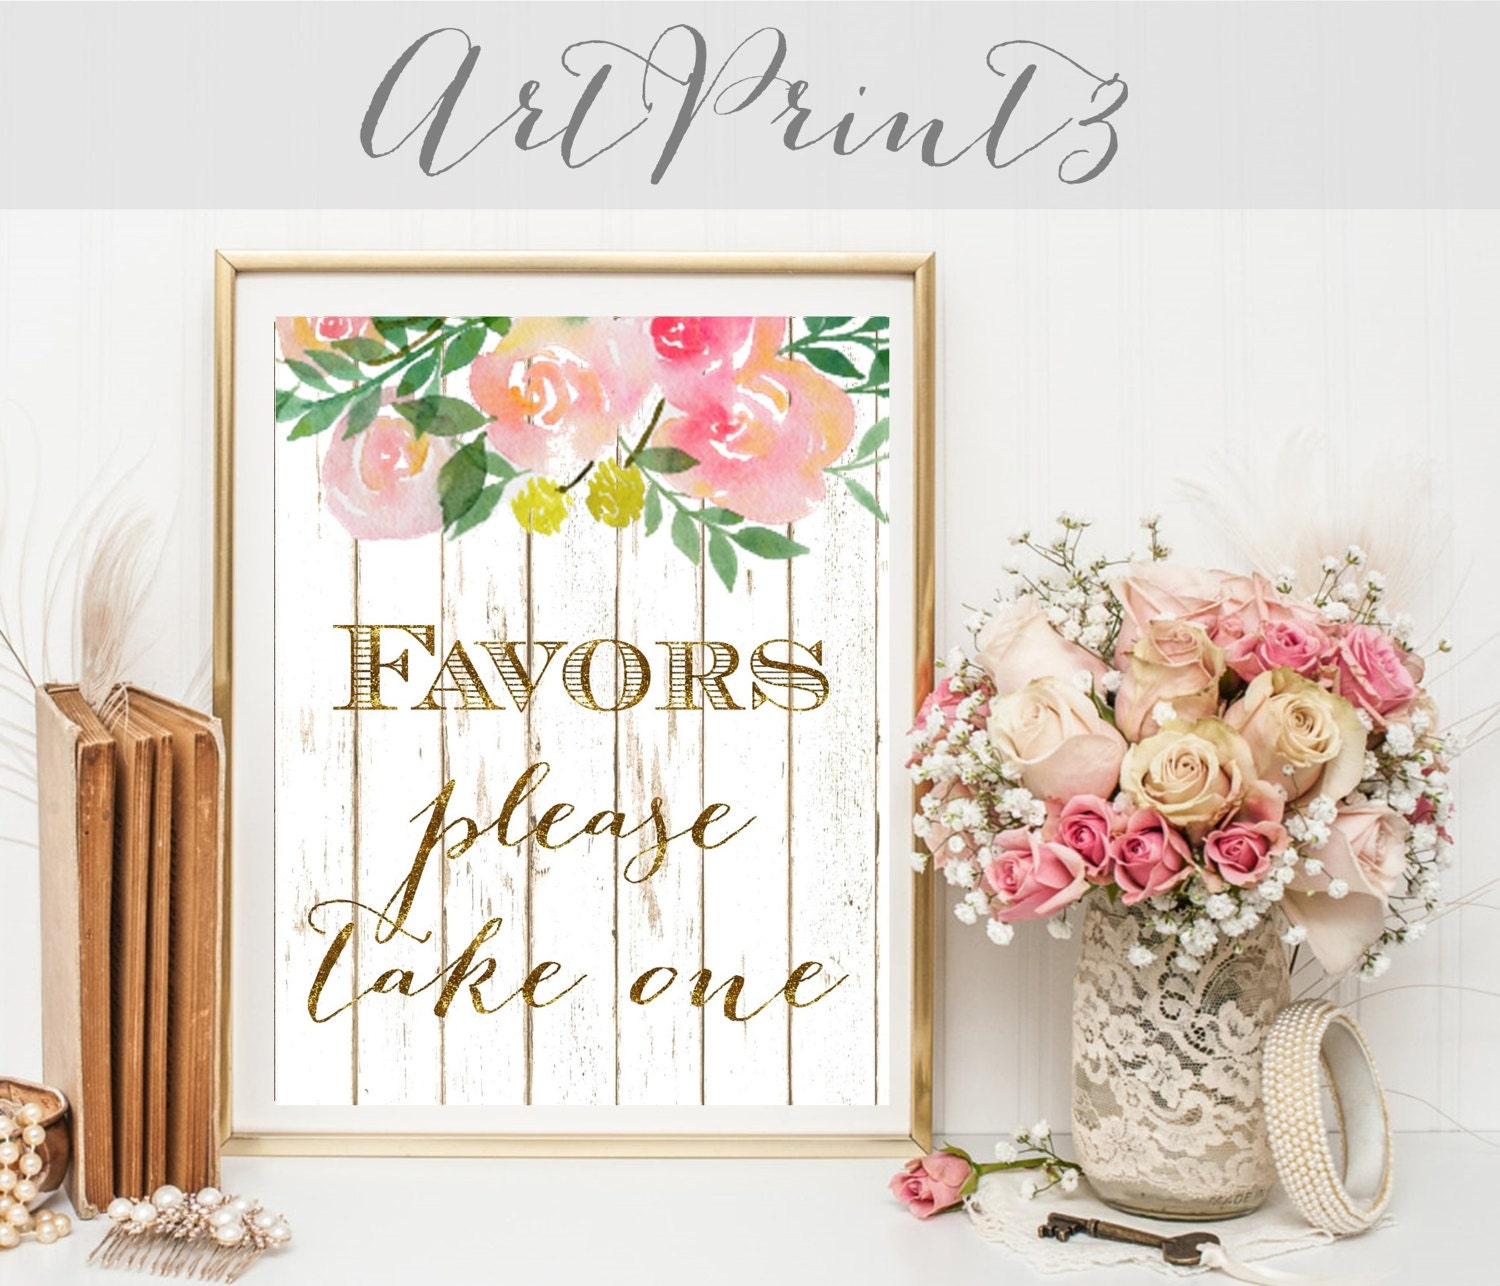 Favors Please Take One Wedding Sign Printable, Rustic Wedding Favors ...